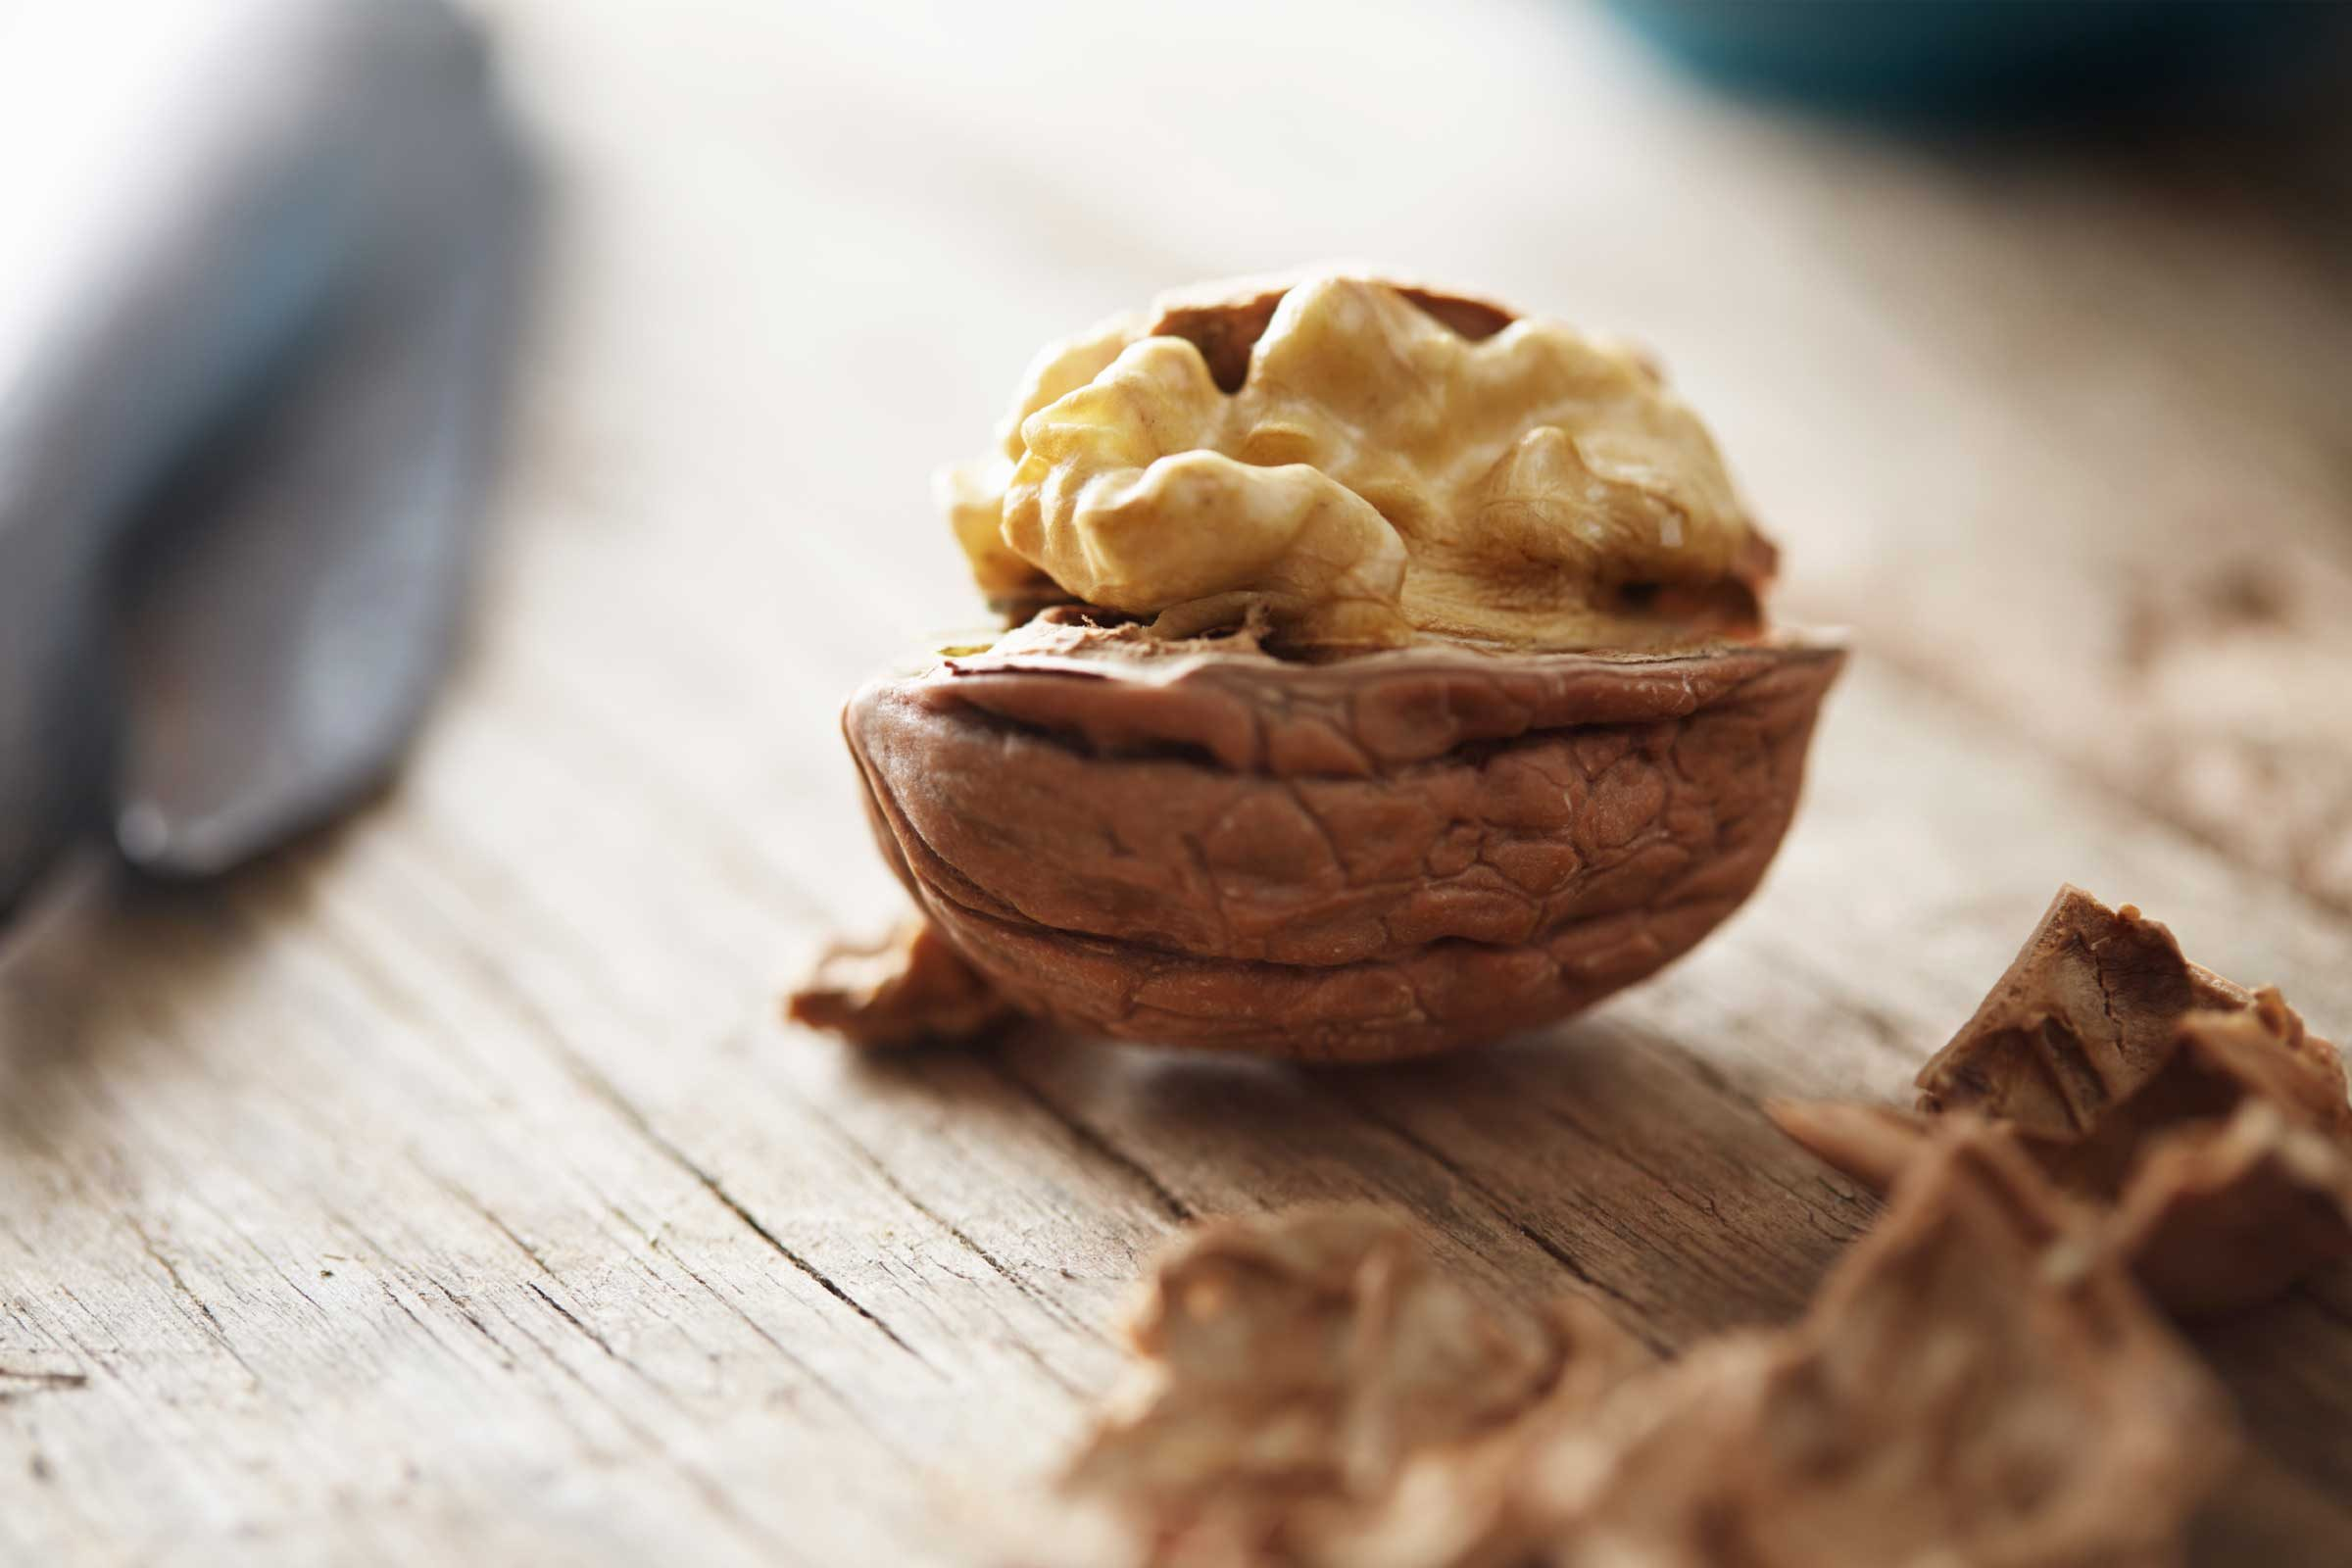 Anal fingering female on male